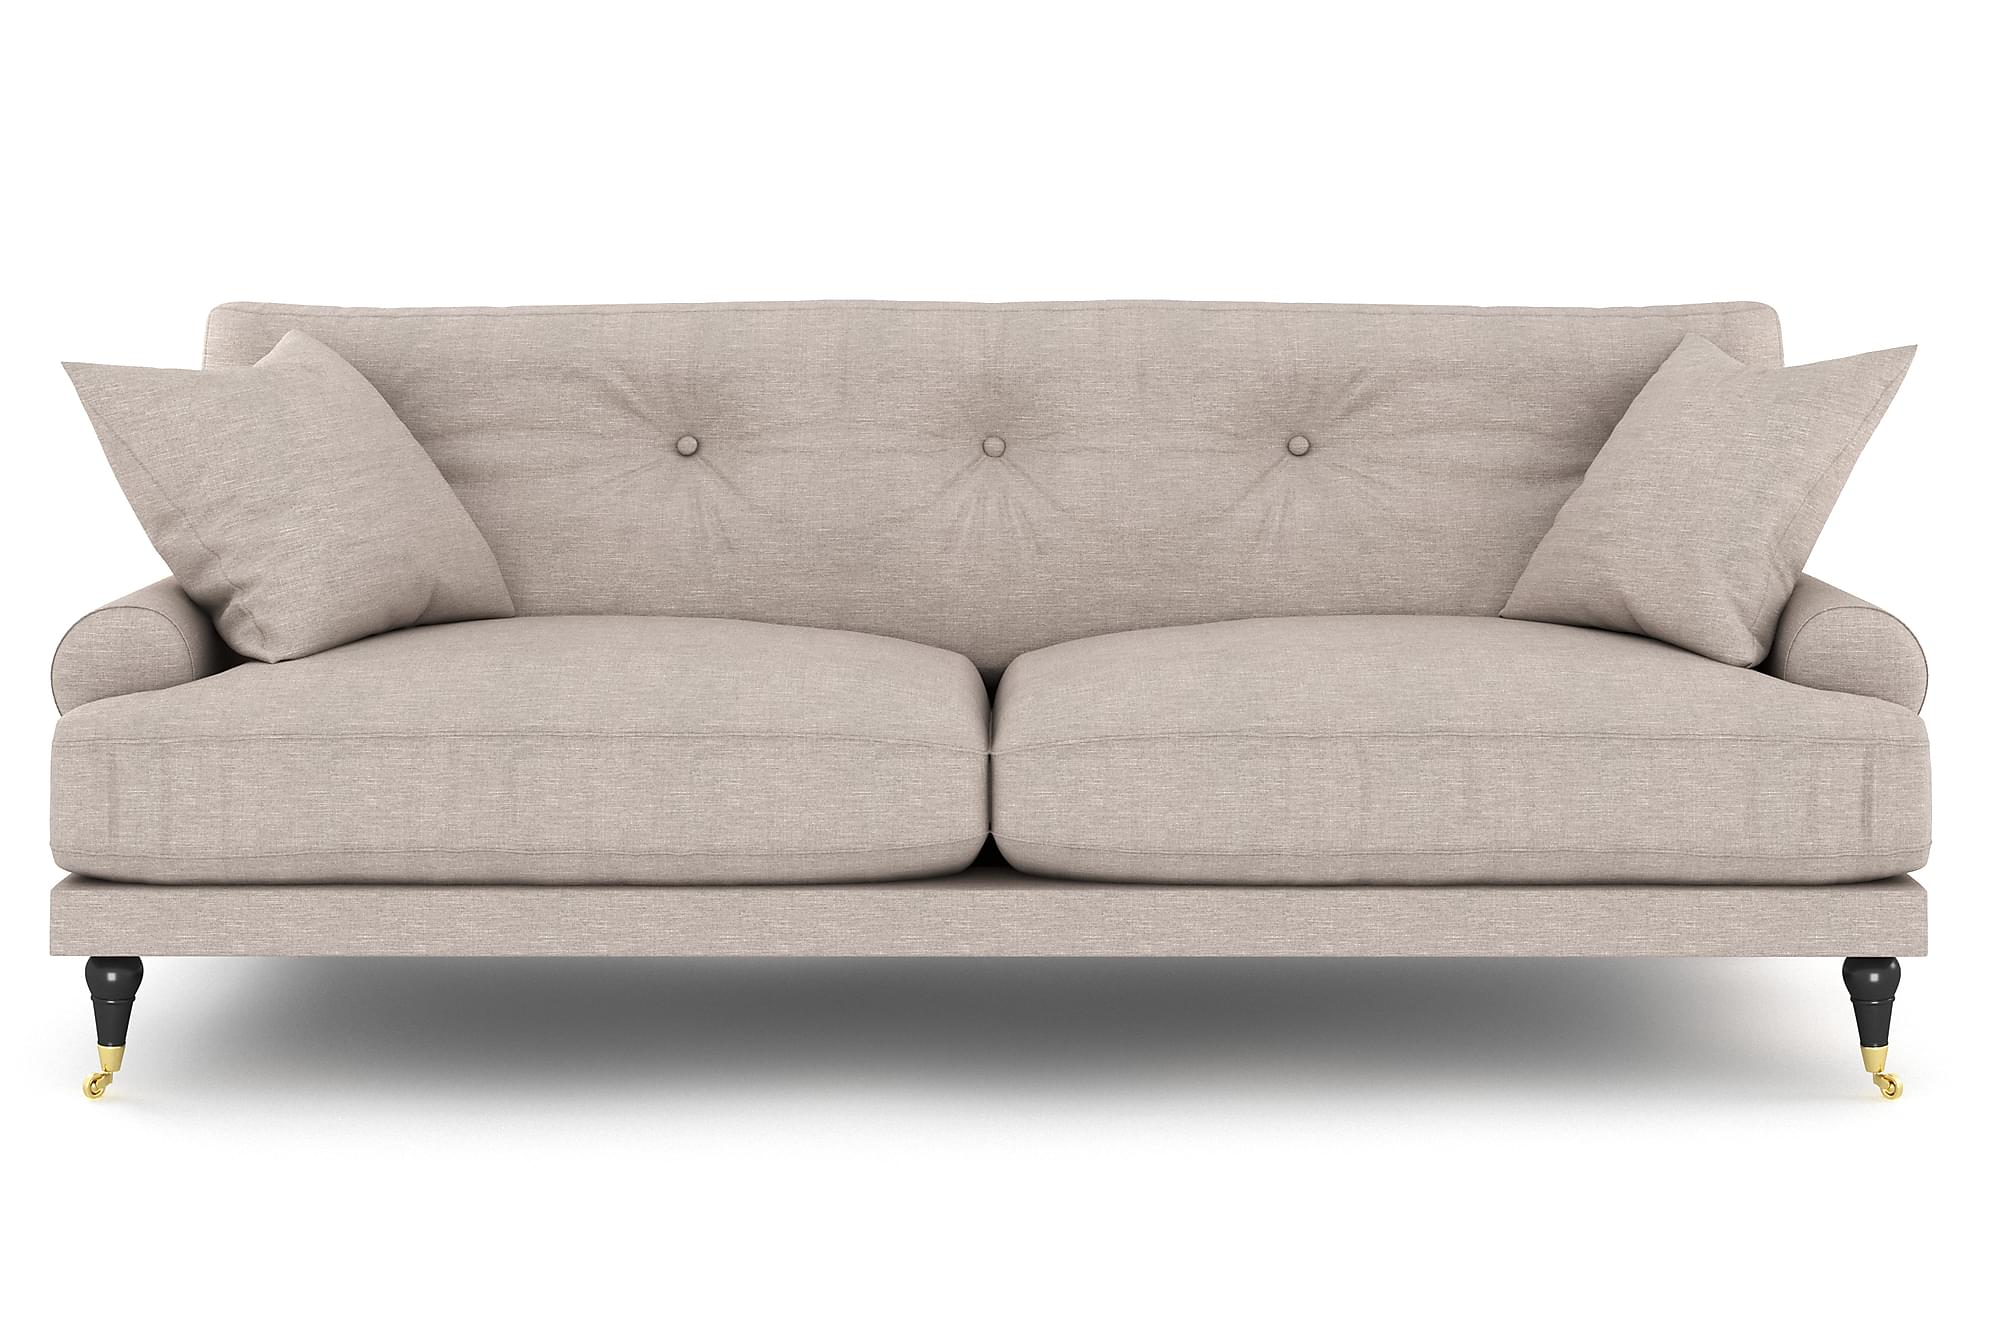 ANTHONY 2-sits Soffa Beige/Mässing, Howardsoffor